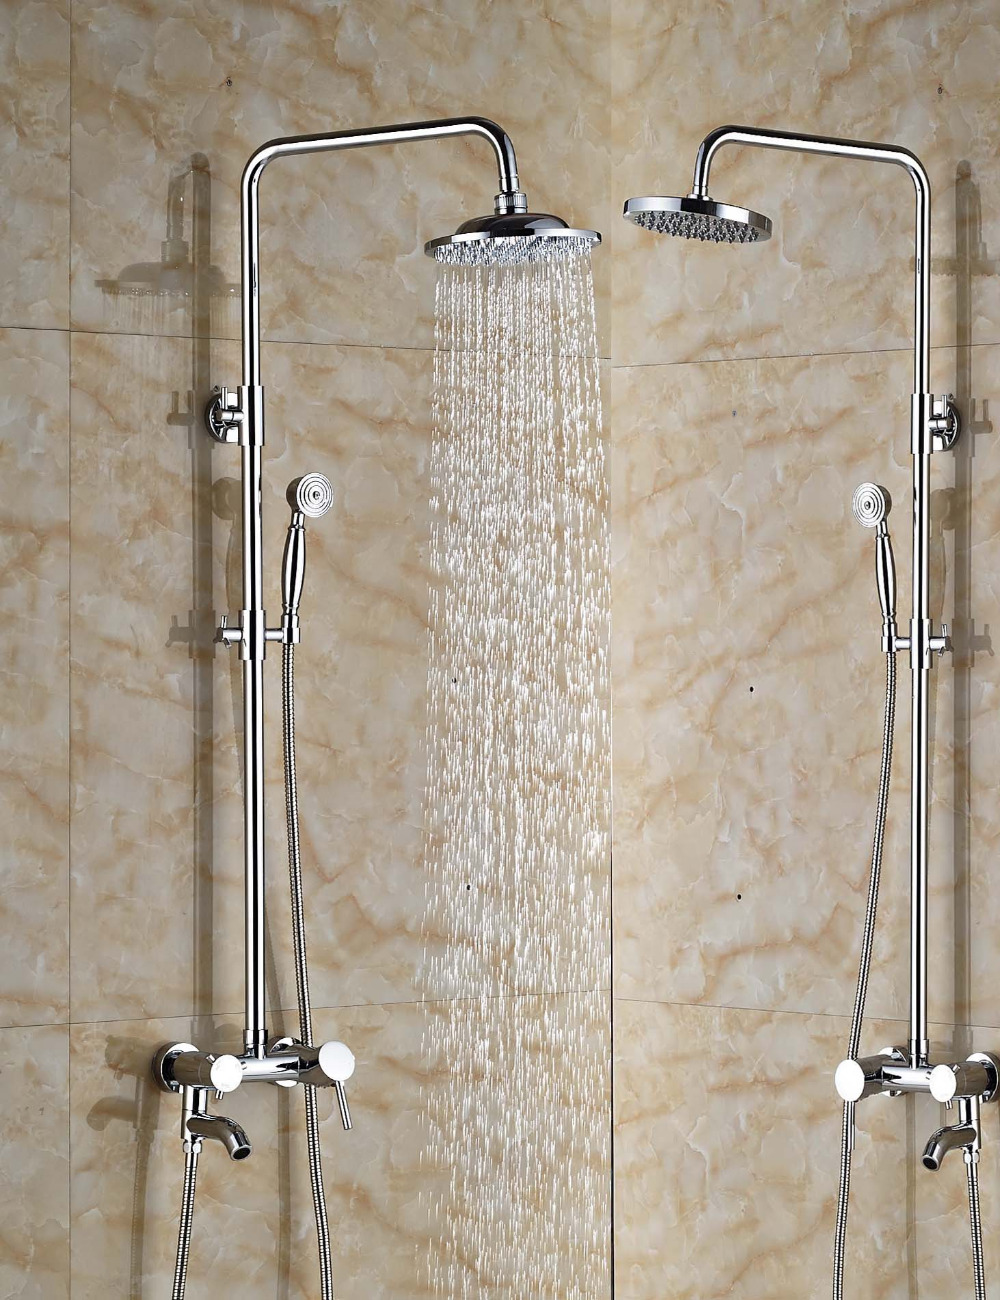 Wholesale And Retail Luxury Wall Mounted Chrome Finish Round Rain Shower Head Valve Mixer Tap Swivel Spout W/ Hand Shower